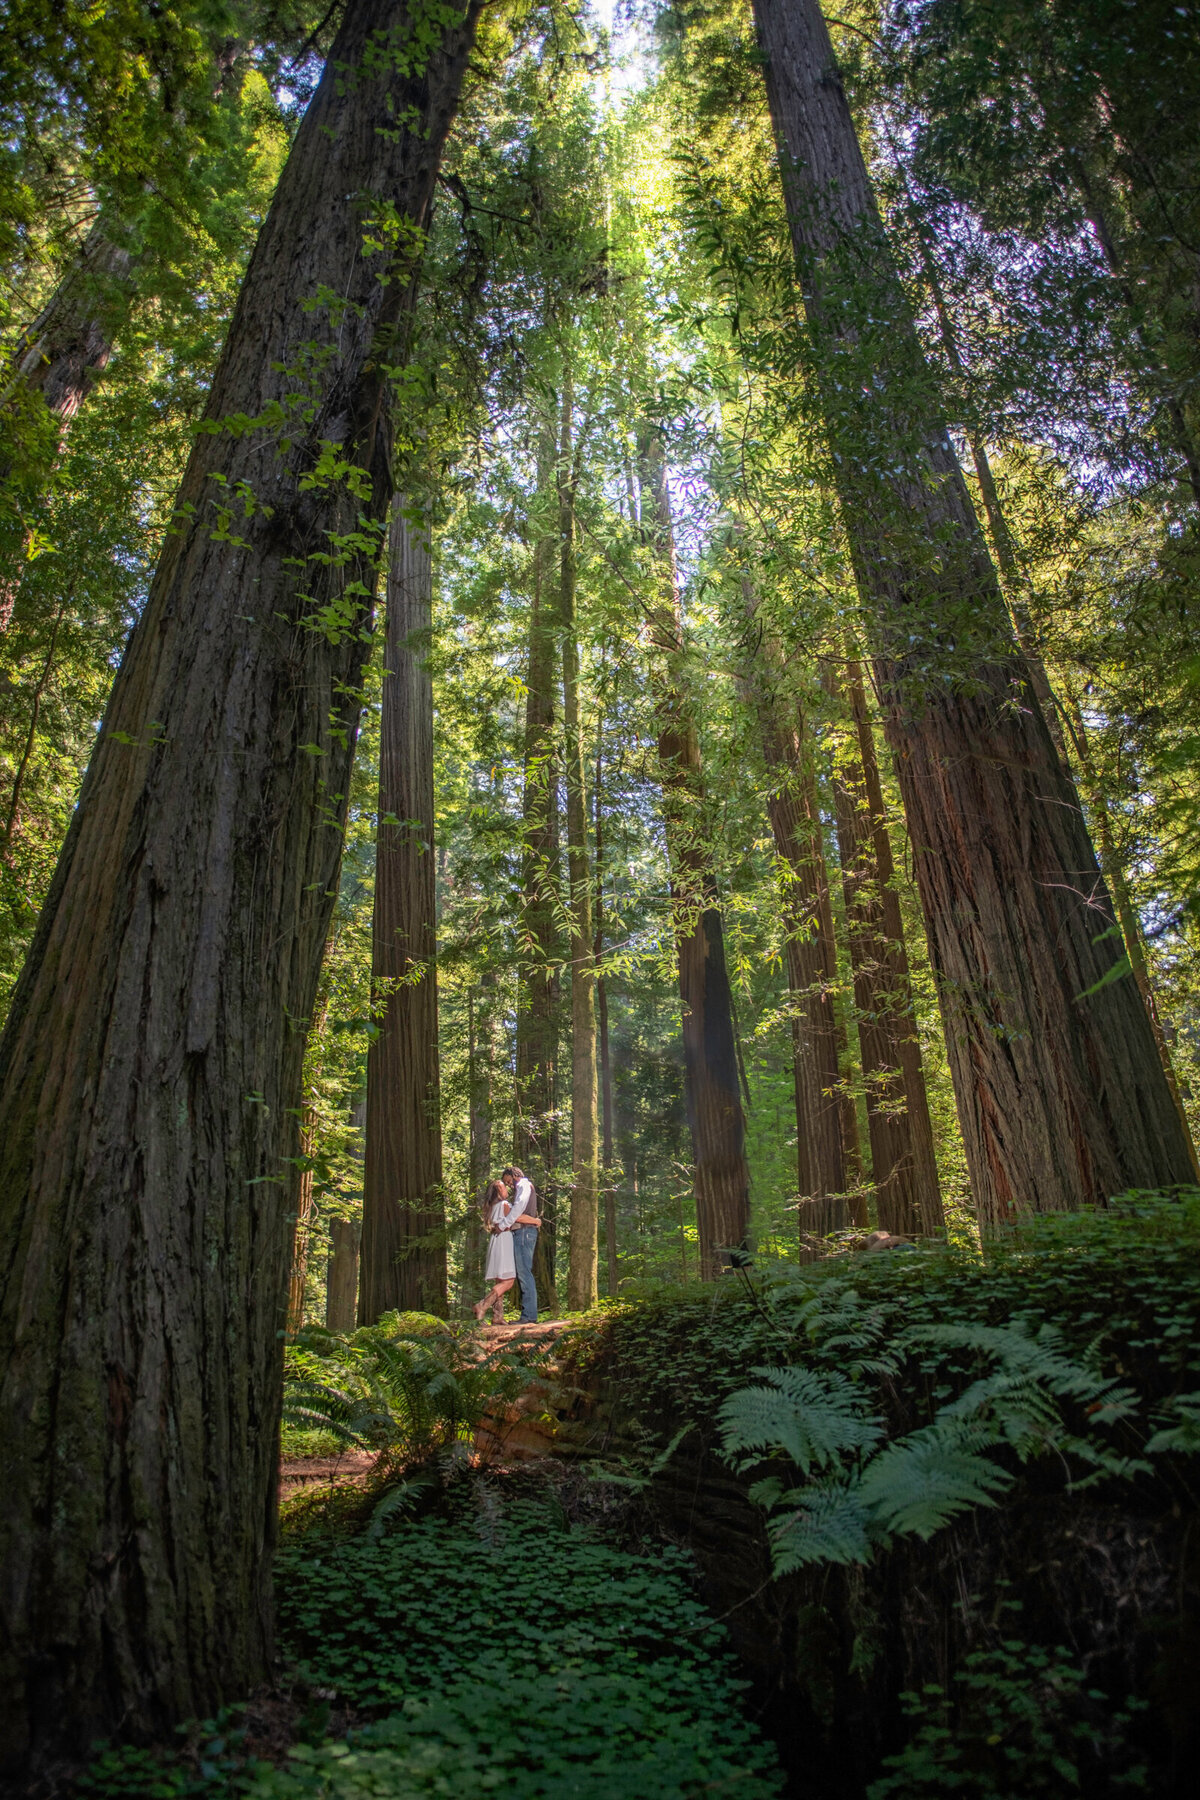 Humboldt-County-Elopement-Photographer-Redwoods-Avenue-of-the-Giants-Humboldt-Redwoods-Redwood-National-Park-Parky's-Pics-Coastal-Redwoods-Elopements-53